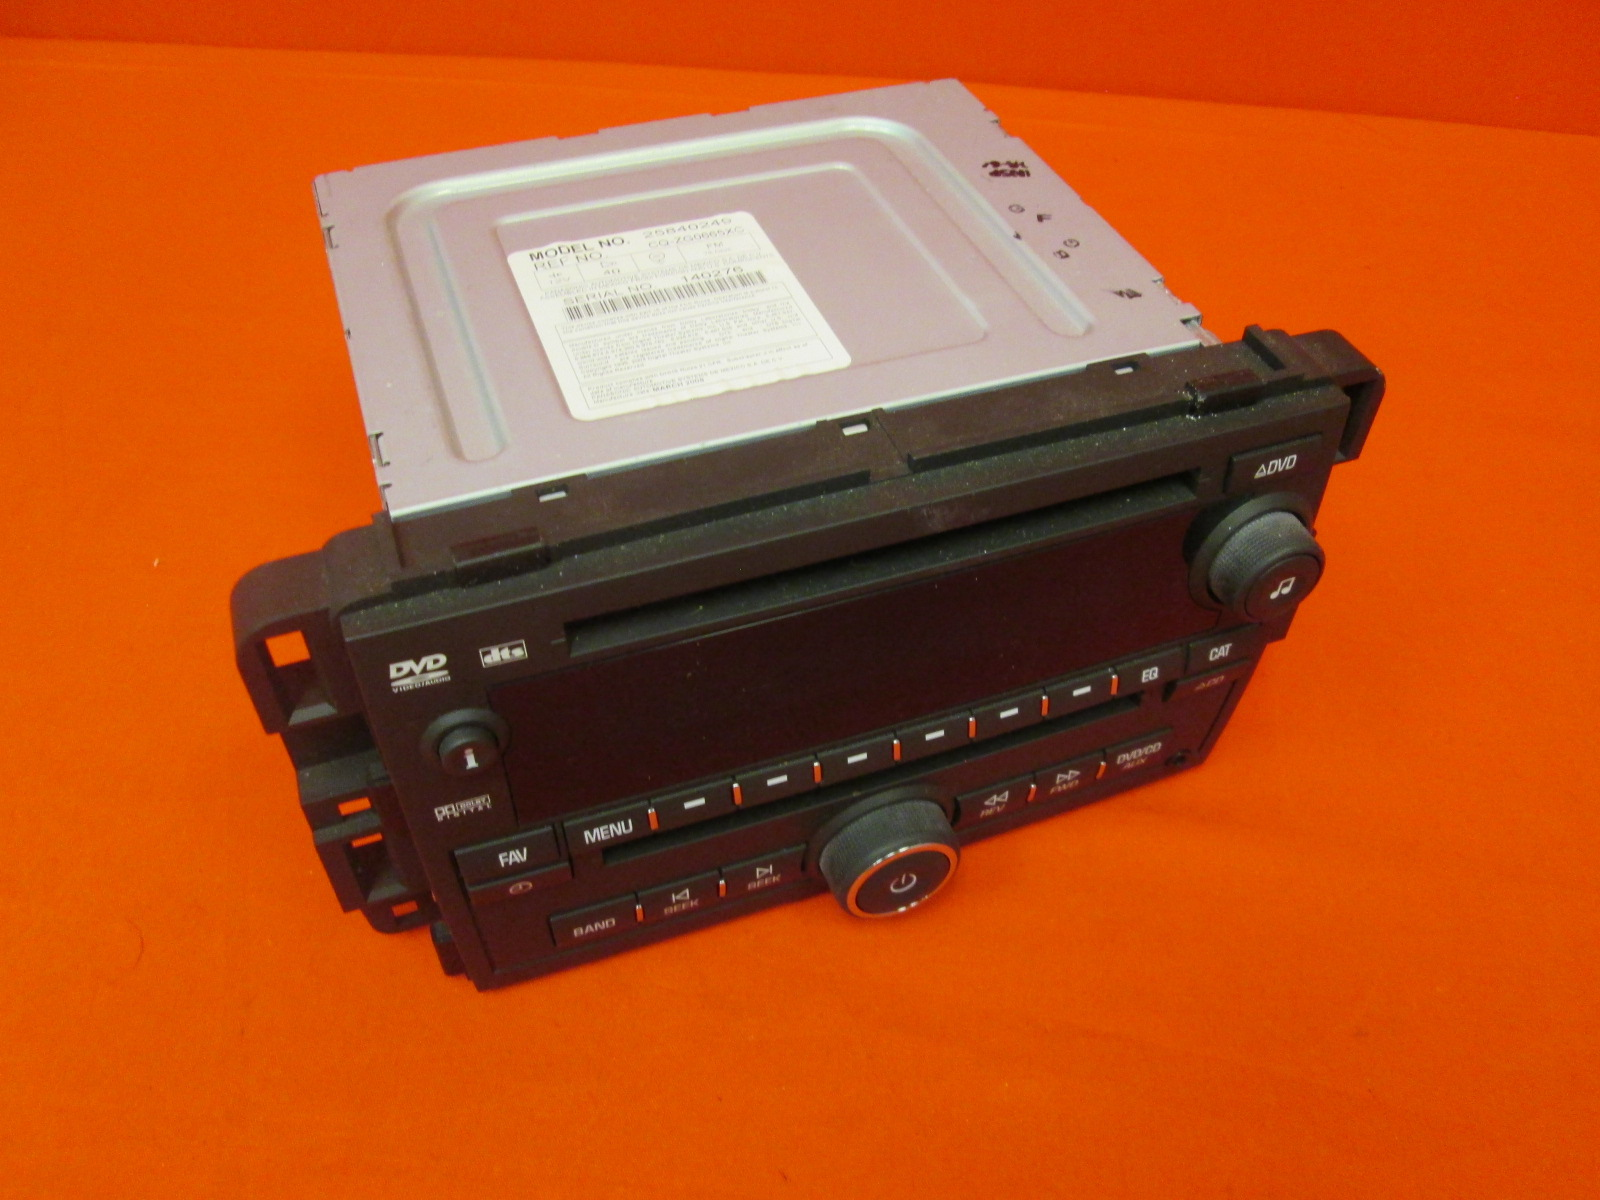 Chevy Gmc Truck 2007-2008 Radio AM FM MP3 CD DVD Player Part Number 25